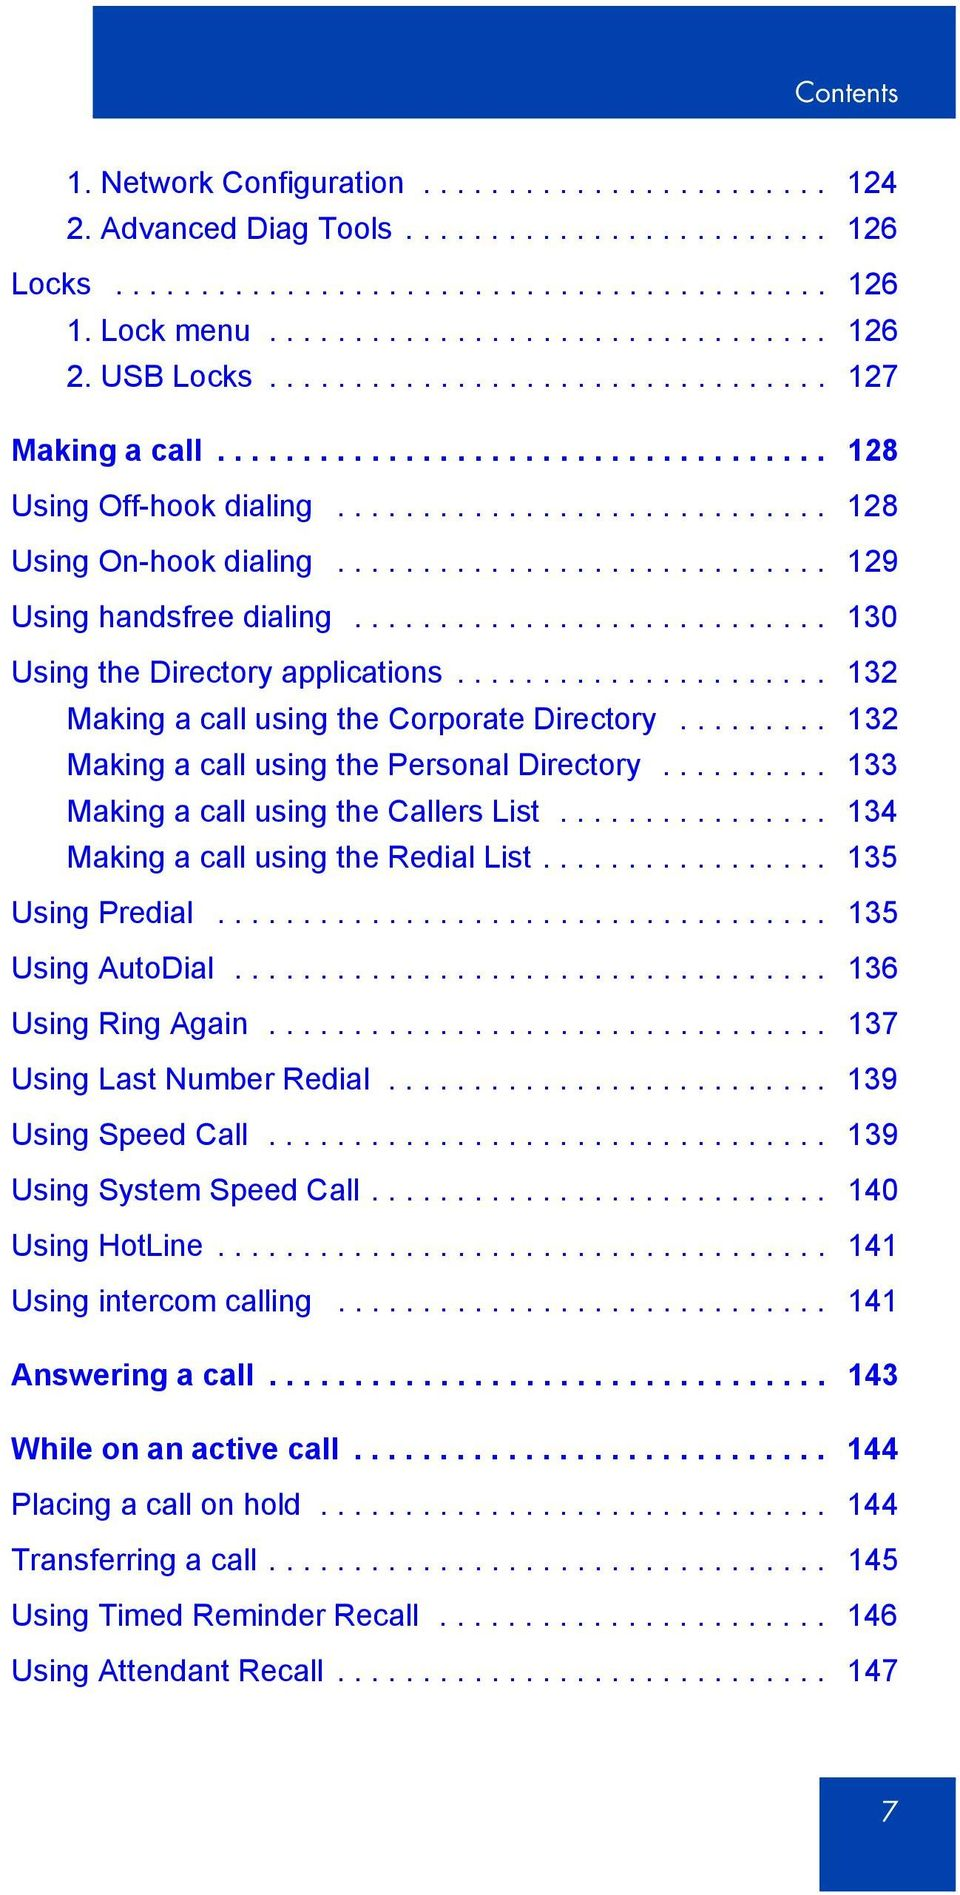 ............................ 129 Using handsfree dialing............................ 130 Using the Directory applications...................... 132 Making a call using the Corporate Directory.